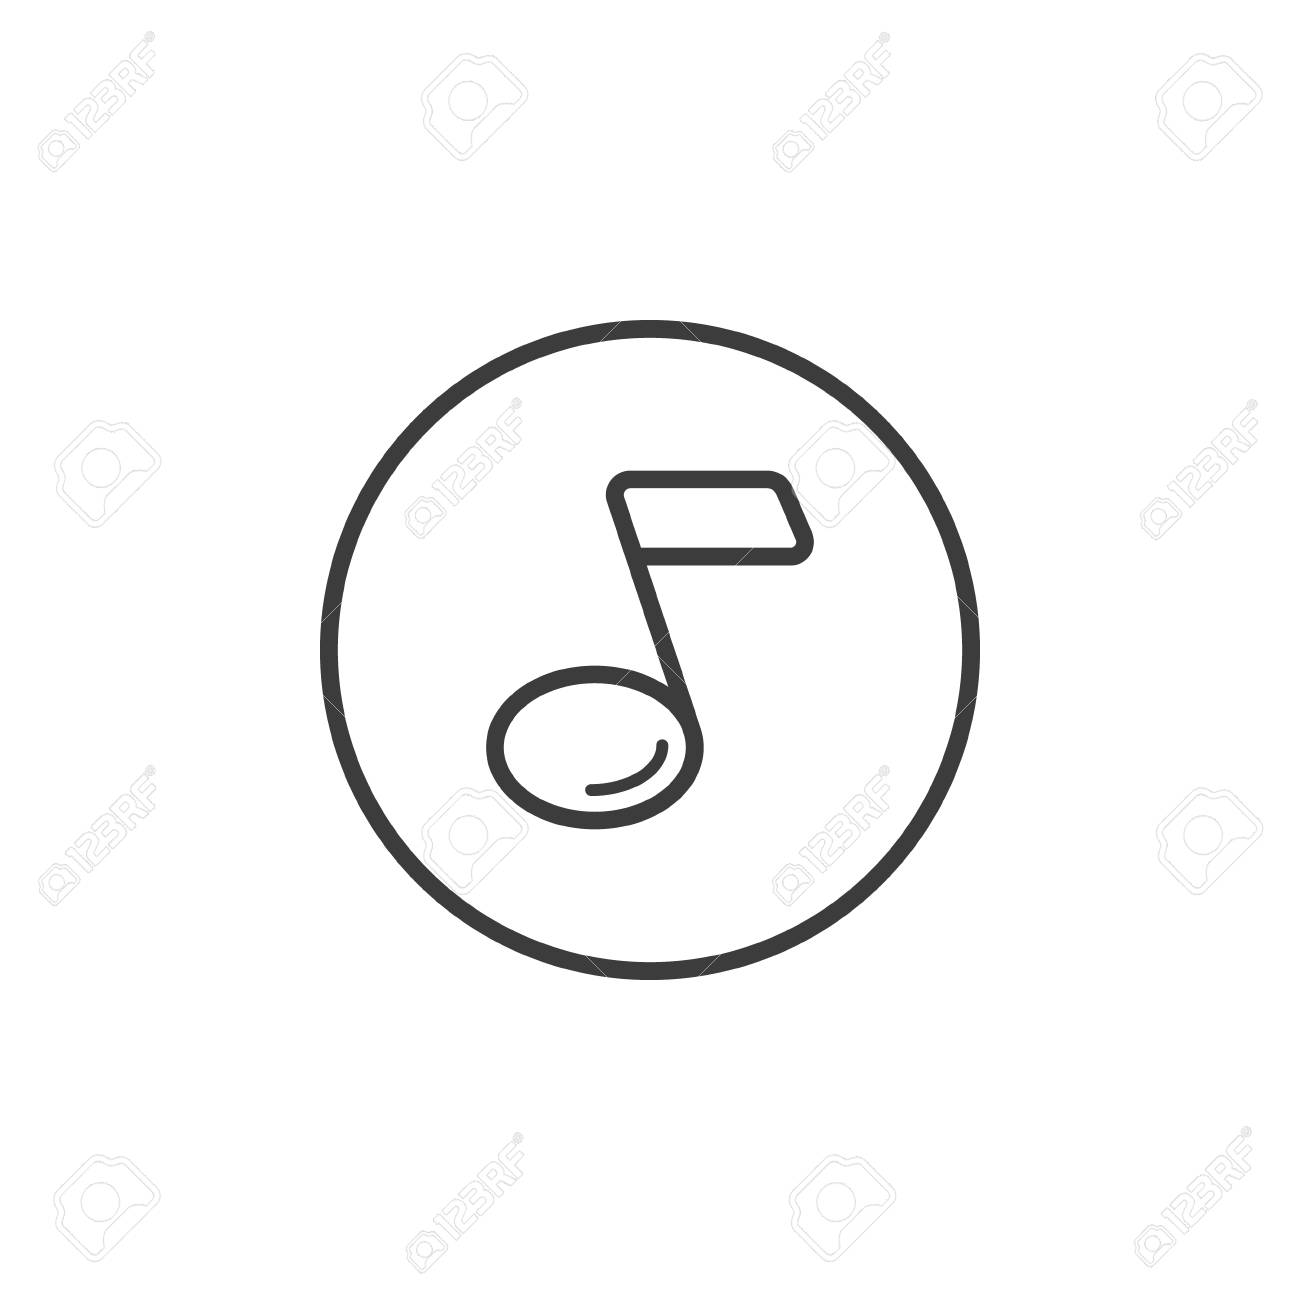 Black and white simple line art music note icon in a round frame stock vector